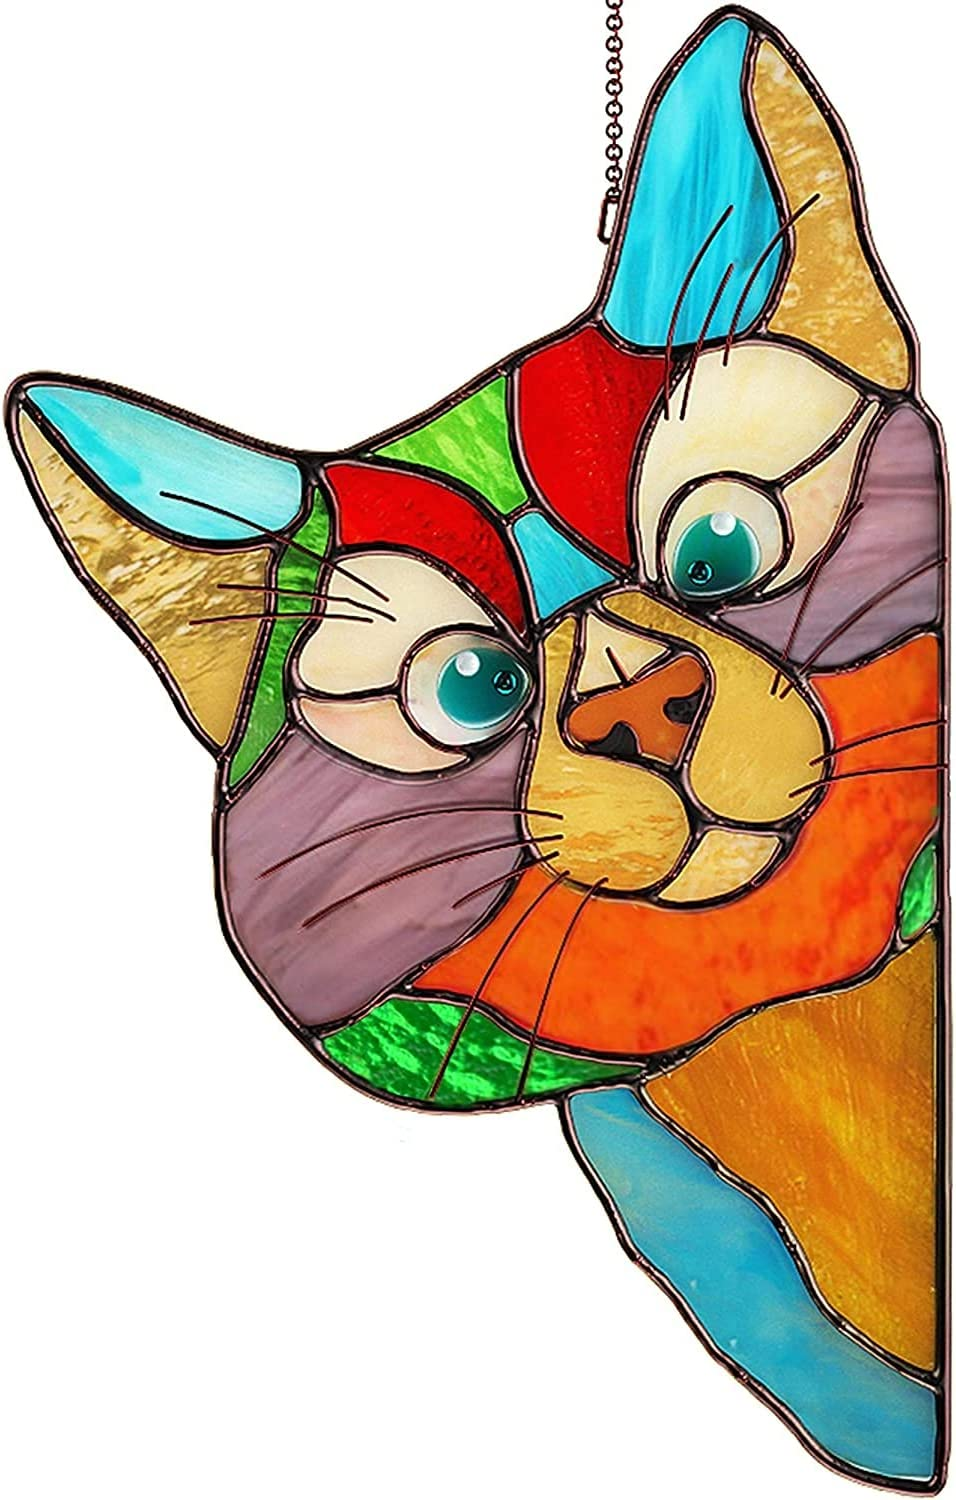 YALANK Peeking Cat Stained Glass Window Hangings-8.7 inches Length and 5.5 inches Wide-Window Funny Cat Decor